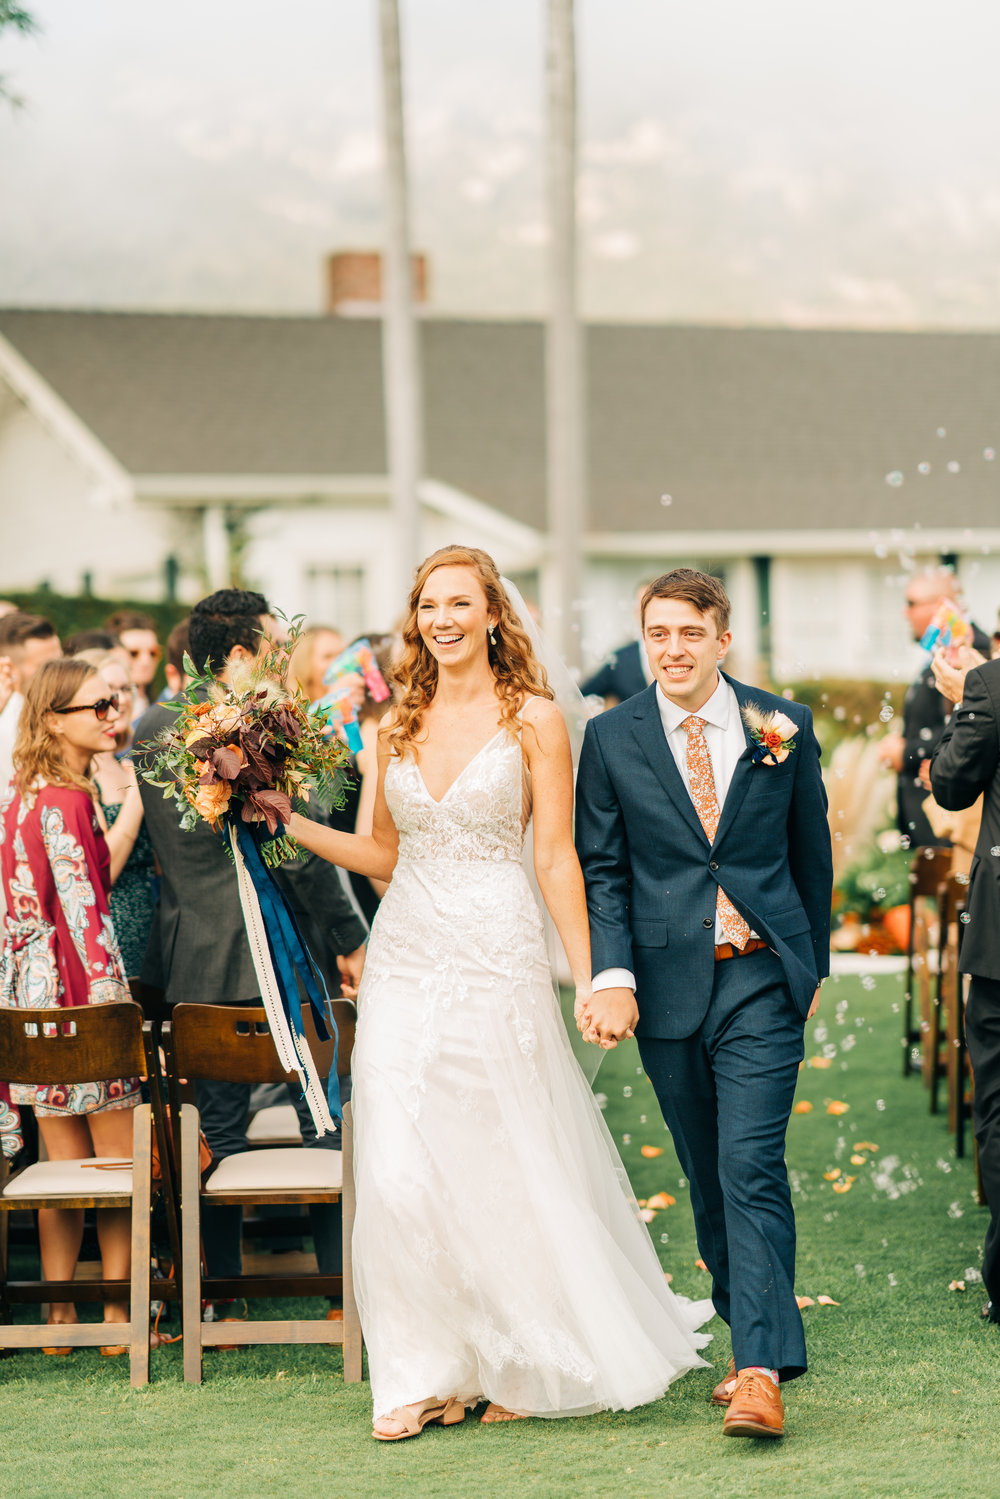 www.santabarbarawedding.com | Brandon Bibbins Photography | The Cottages at Polo Run | Bright Event Rentals | Bride and Groom Exit Ceremony